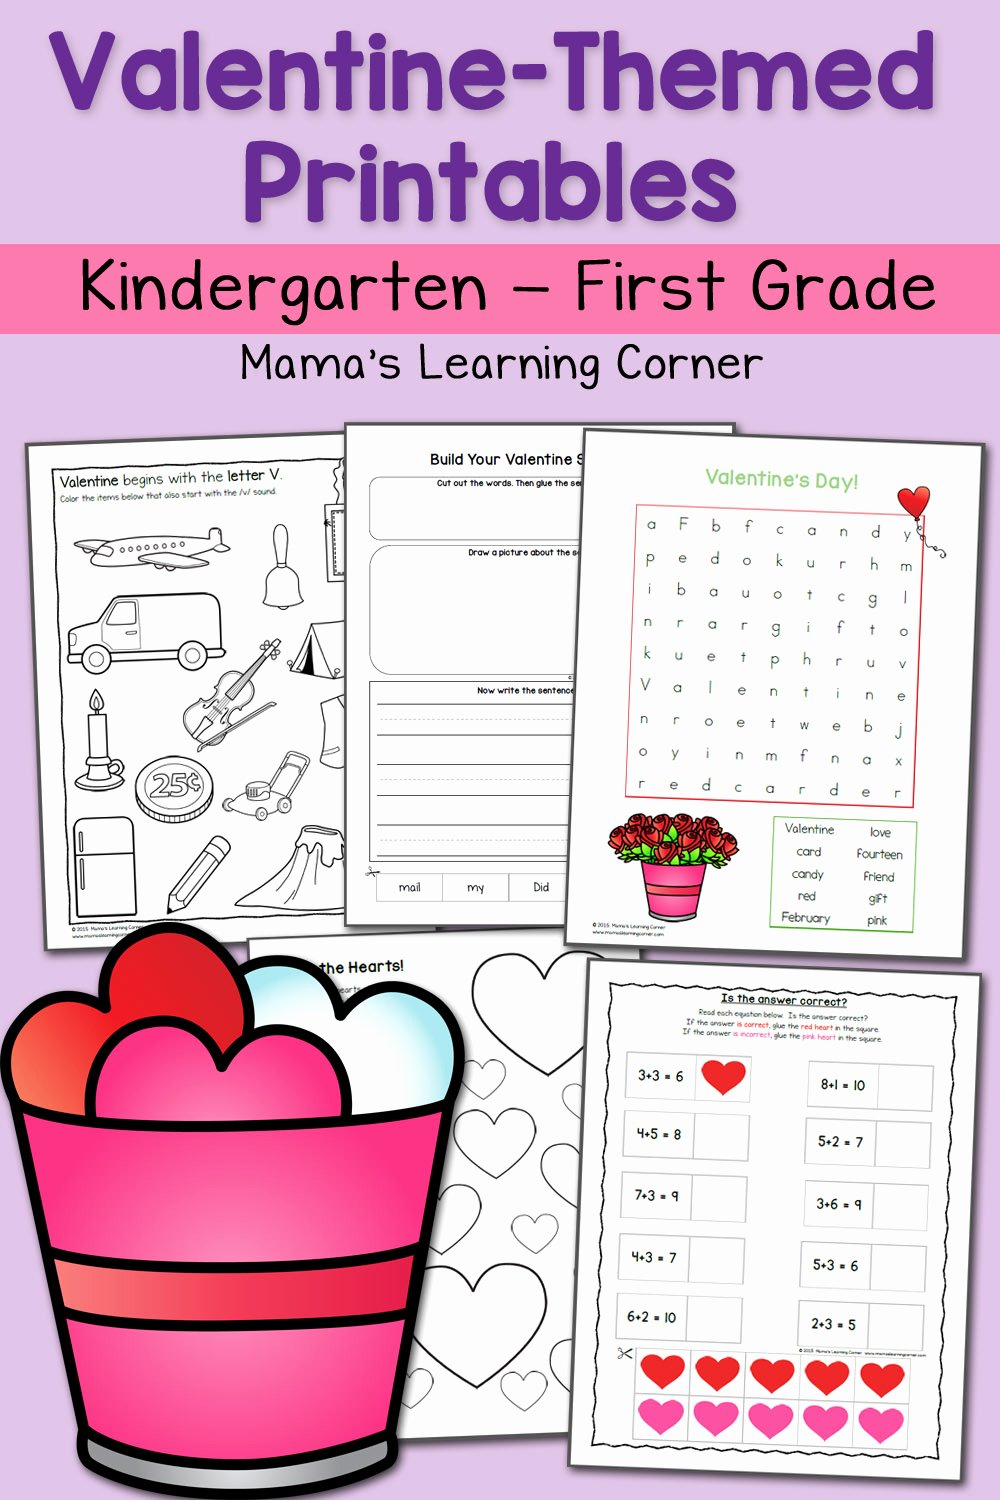 Valentine Worksheets for Preschoolers Printable Valentine Worksheets for Kindergarten and First Grade